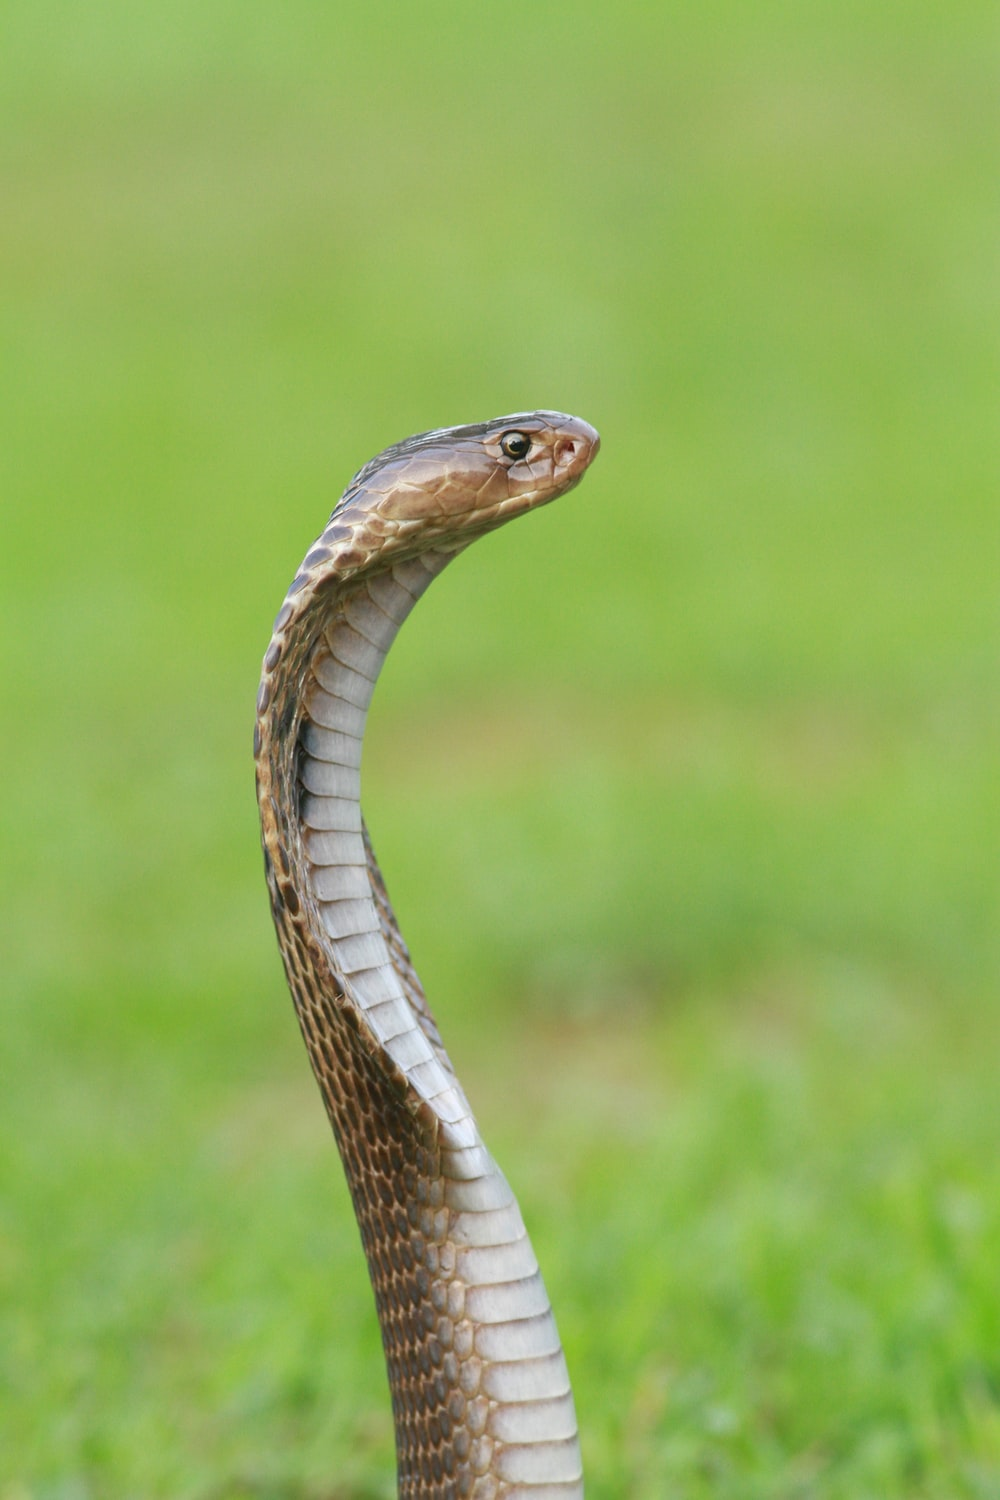 close-up photo of brown and gray snake